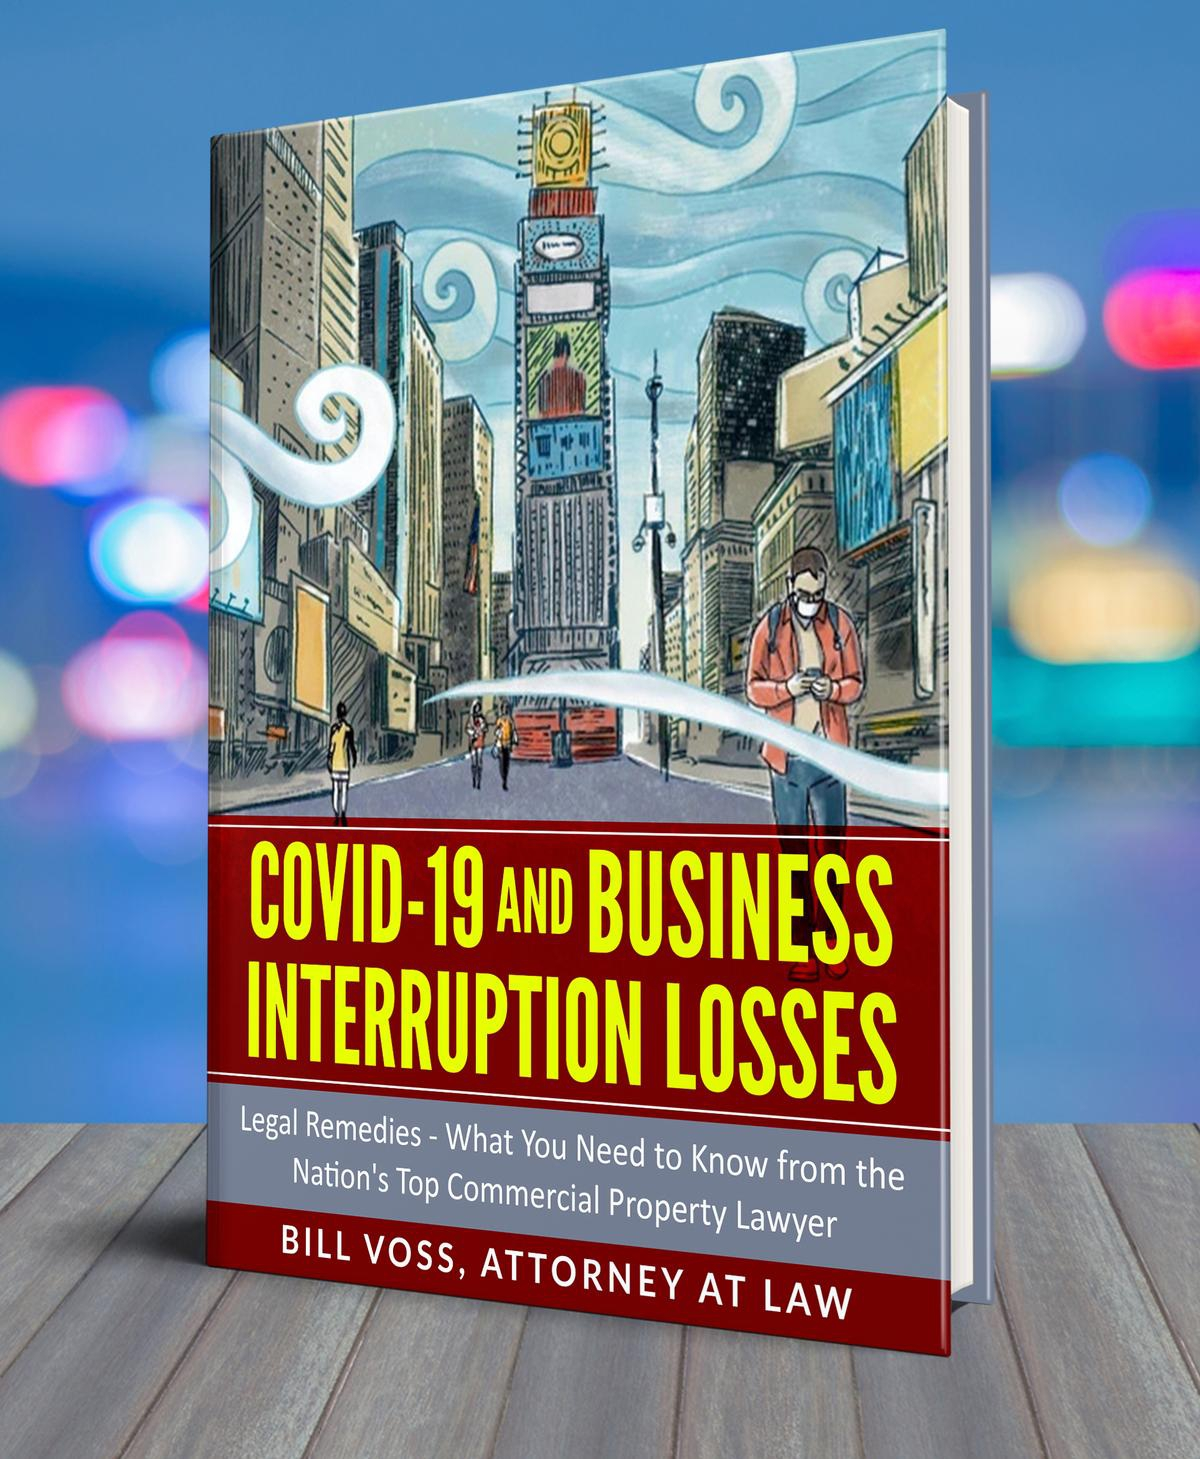 COVID-19 and Business Interruption Losses